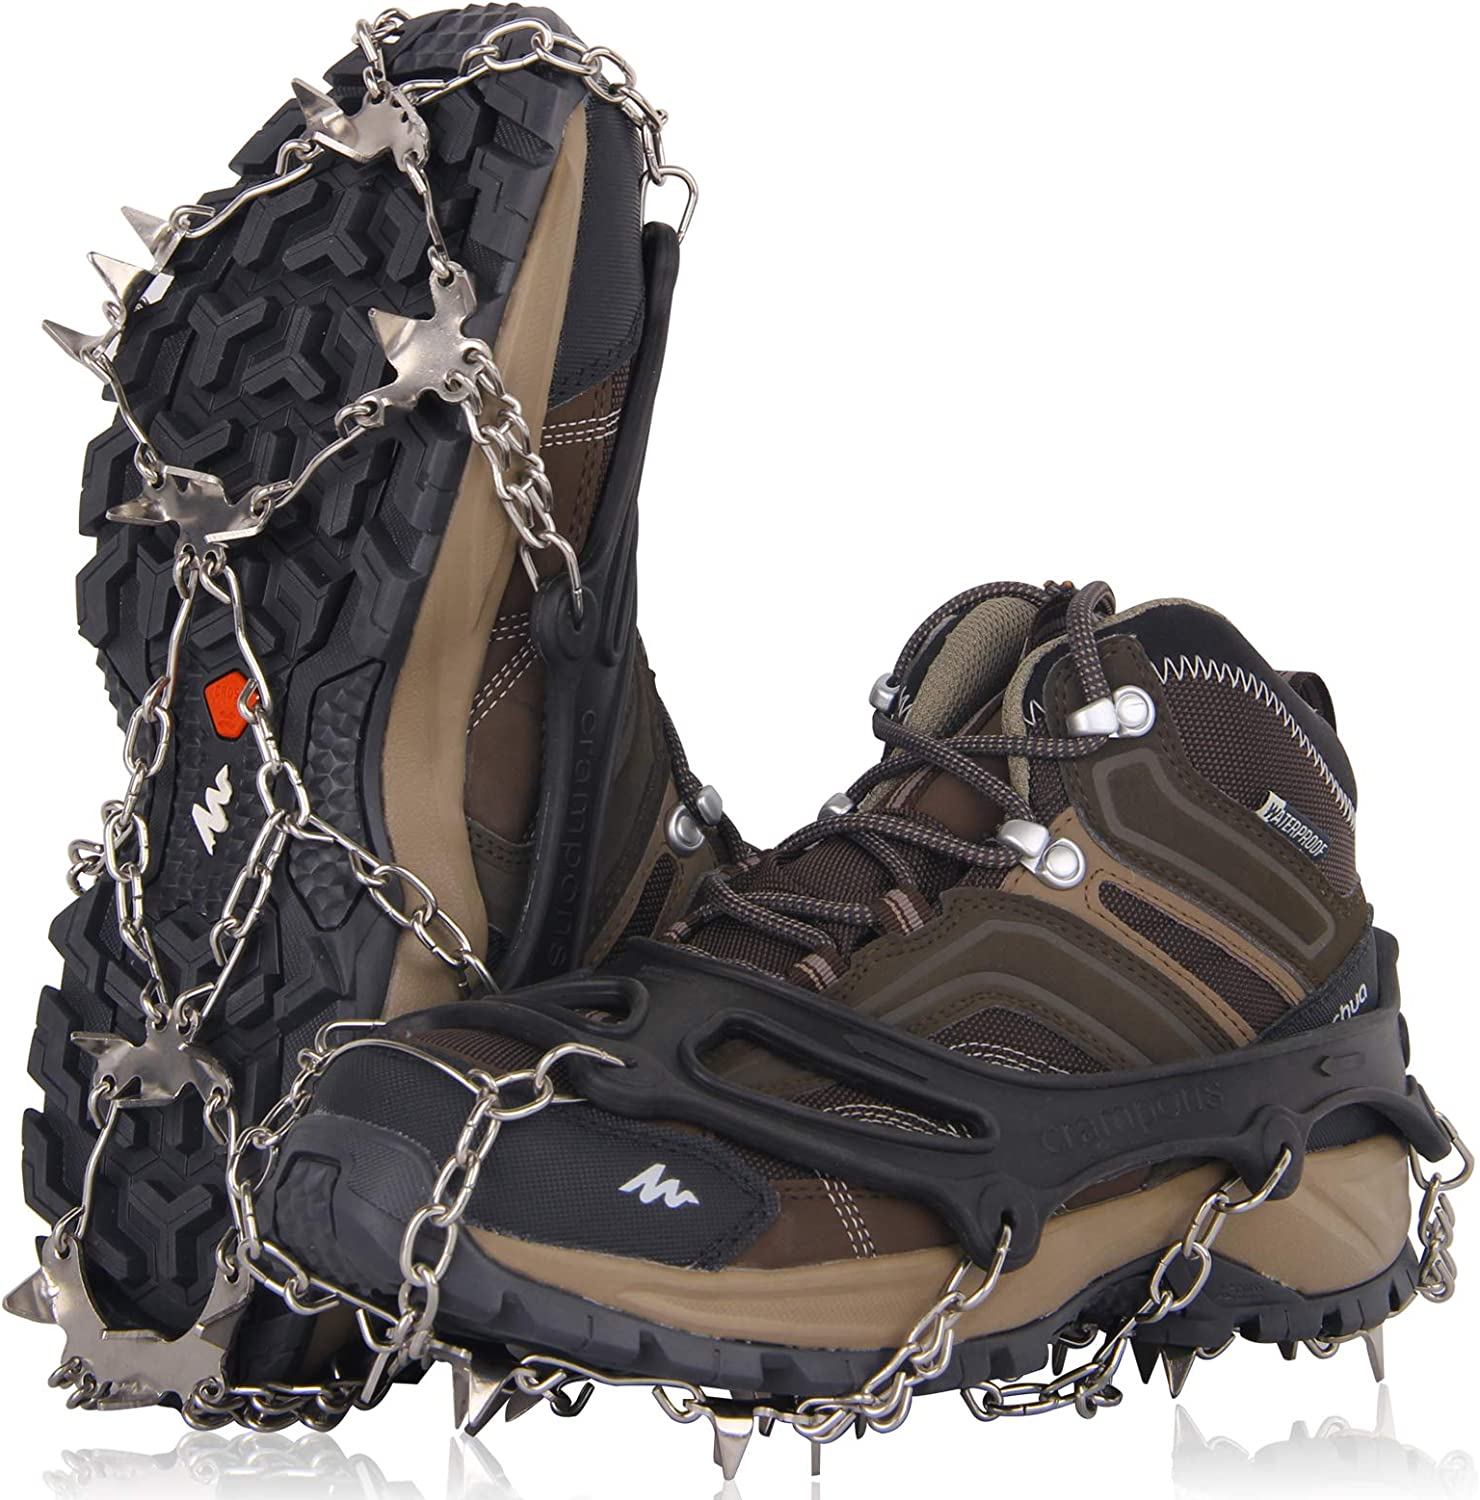 New product! New type Crampons Ice Ranking TOP20 Cleats Traction Snow Grips Shoes Wome Men Boots for